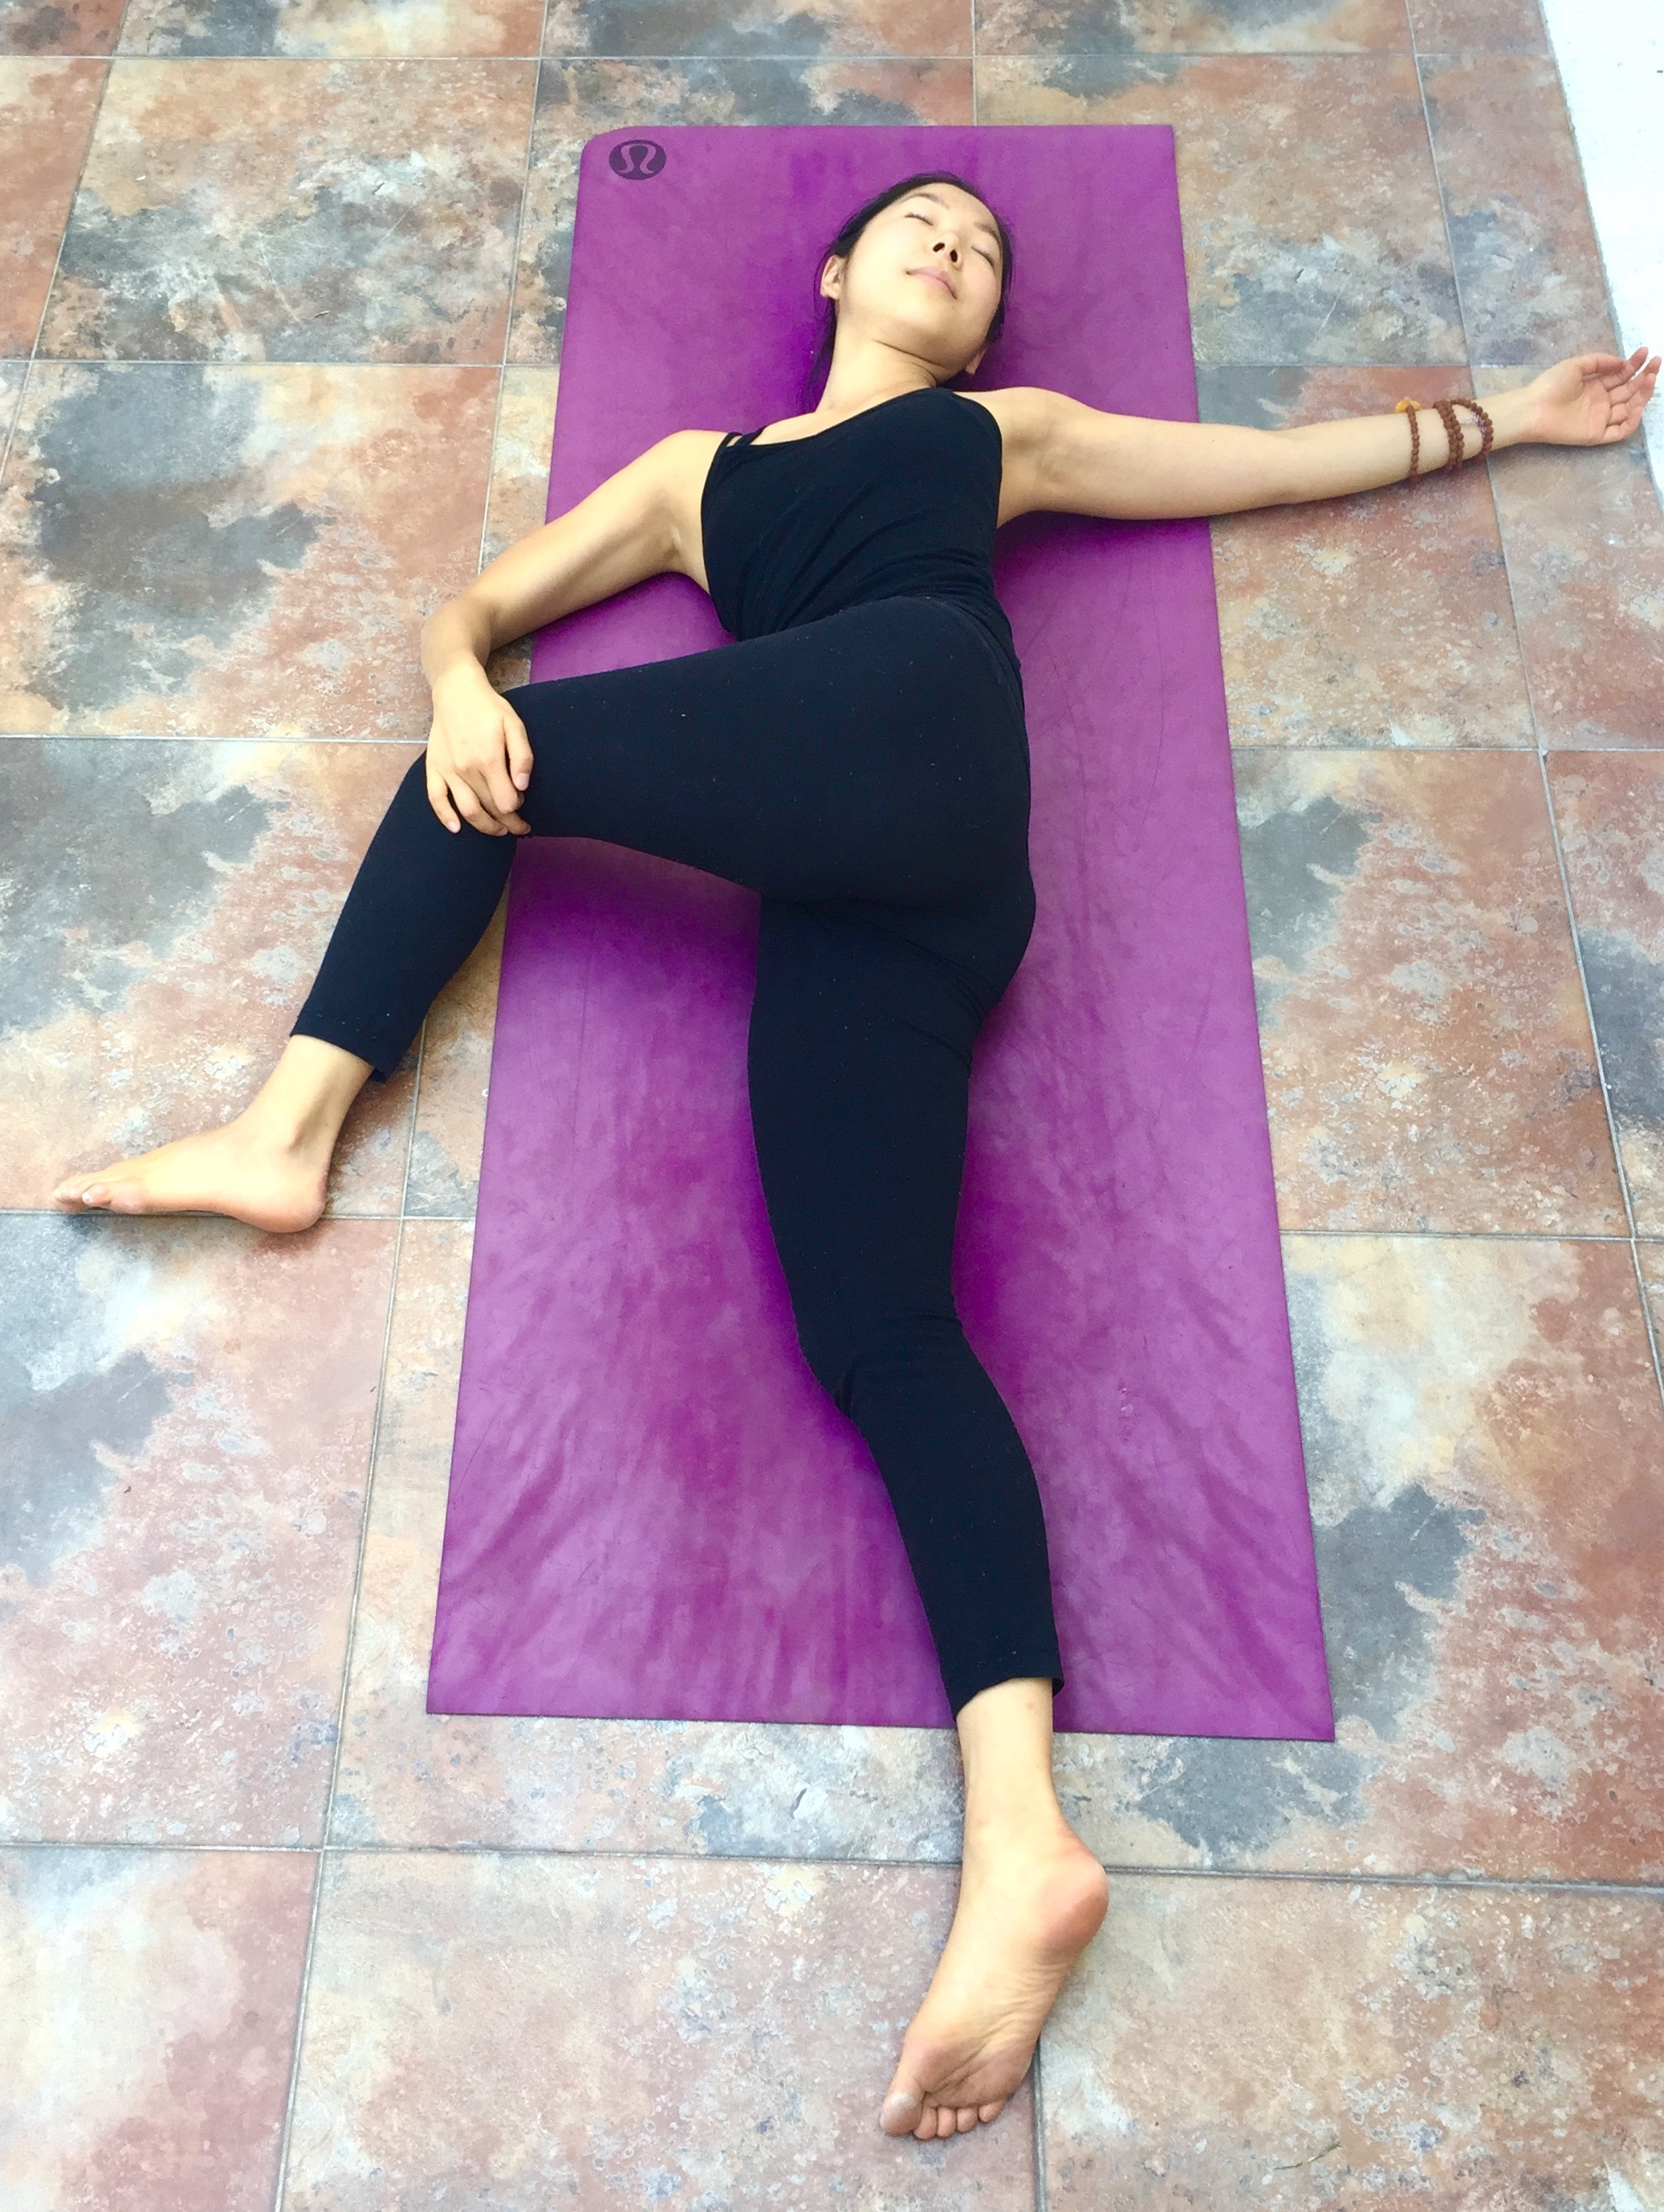 Reclining Twist-Annie Au Yin Yoga